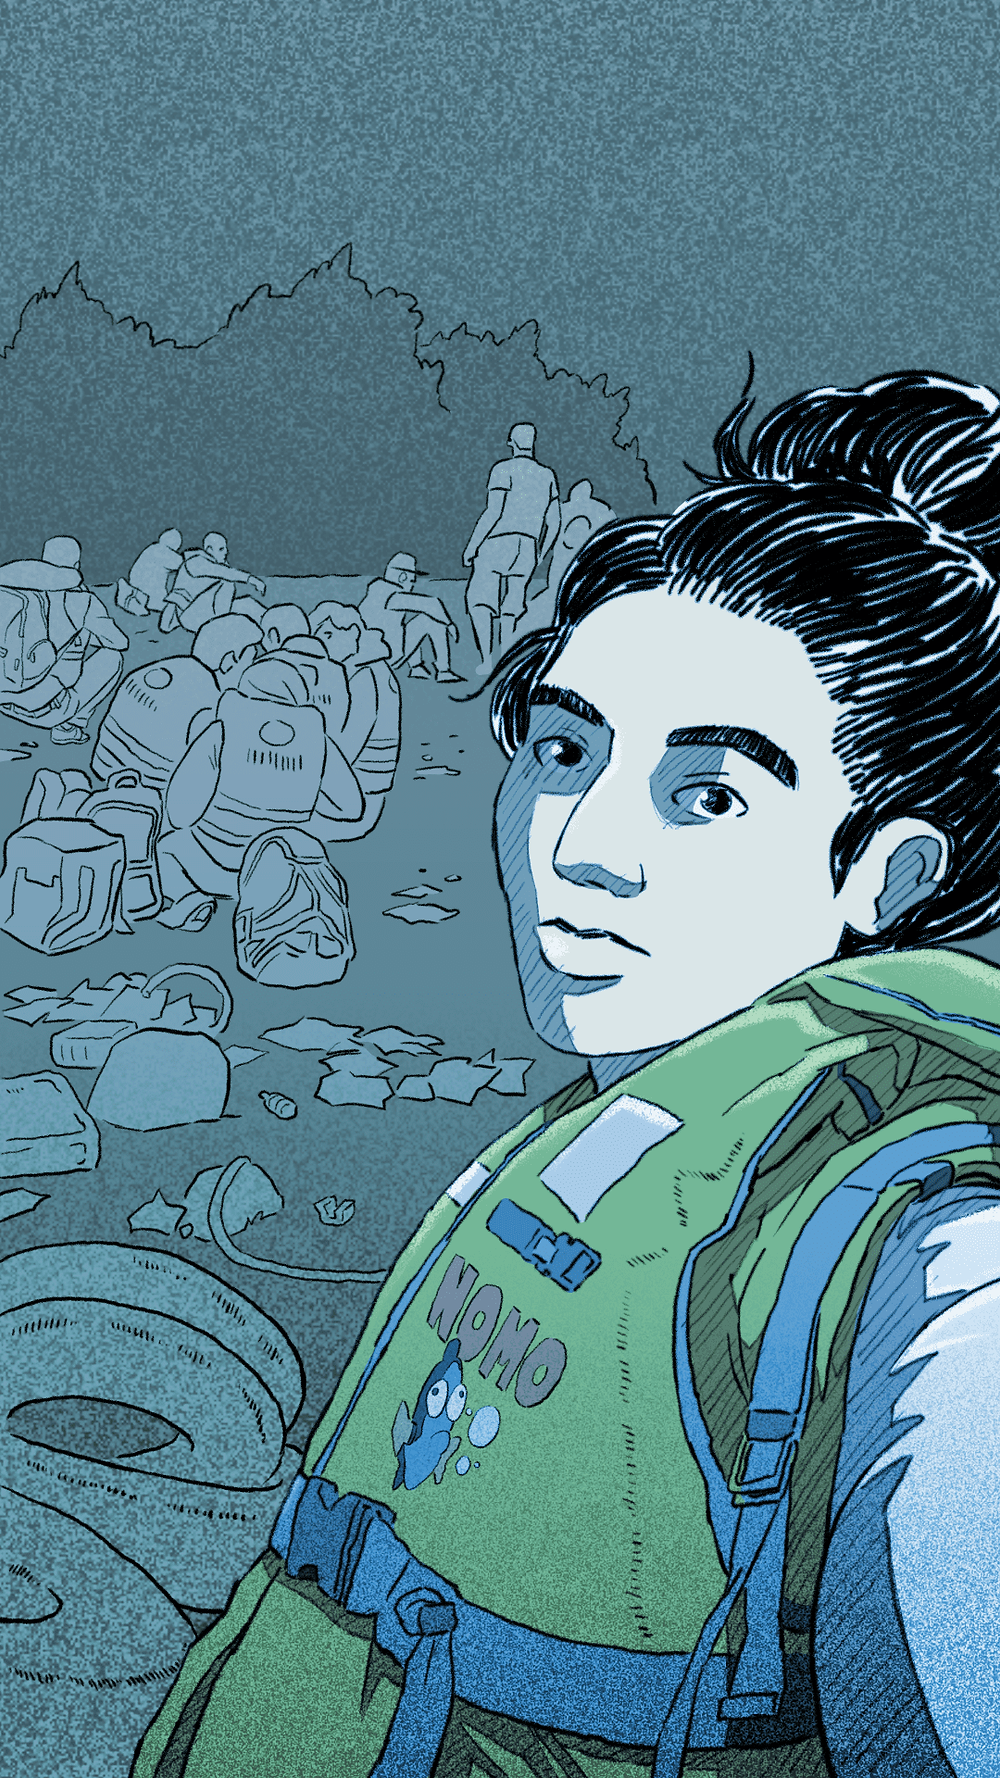 Noor, the main character (Still: 'Bury Me, My Love' dev. The Pixel Hunt). A Syrian girl is illustrated wearing a life vest.